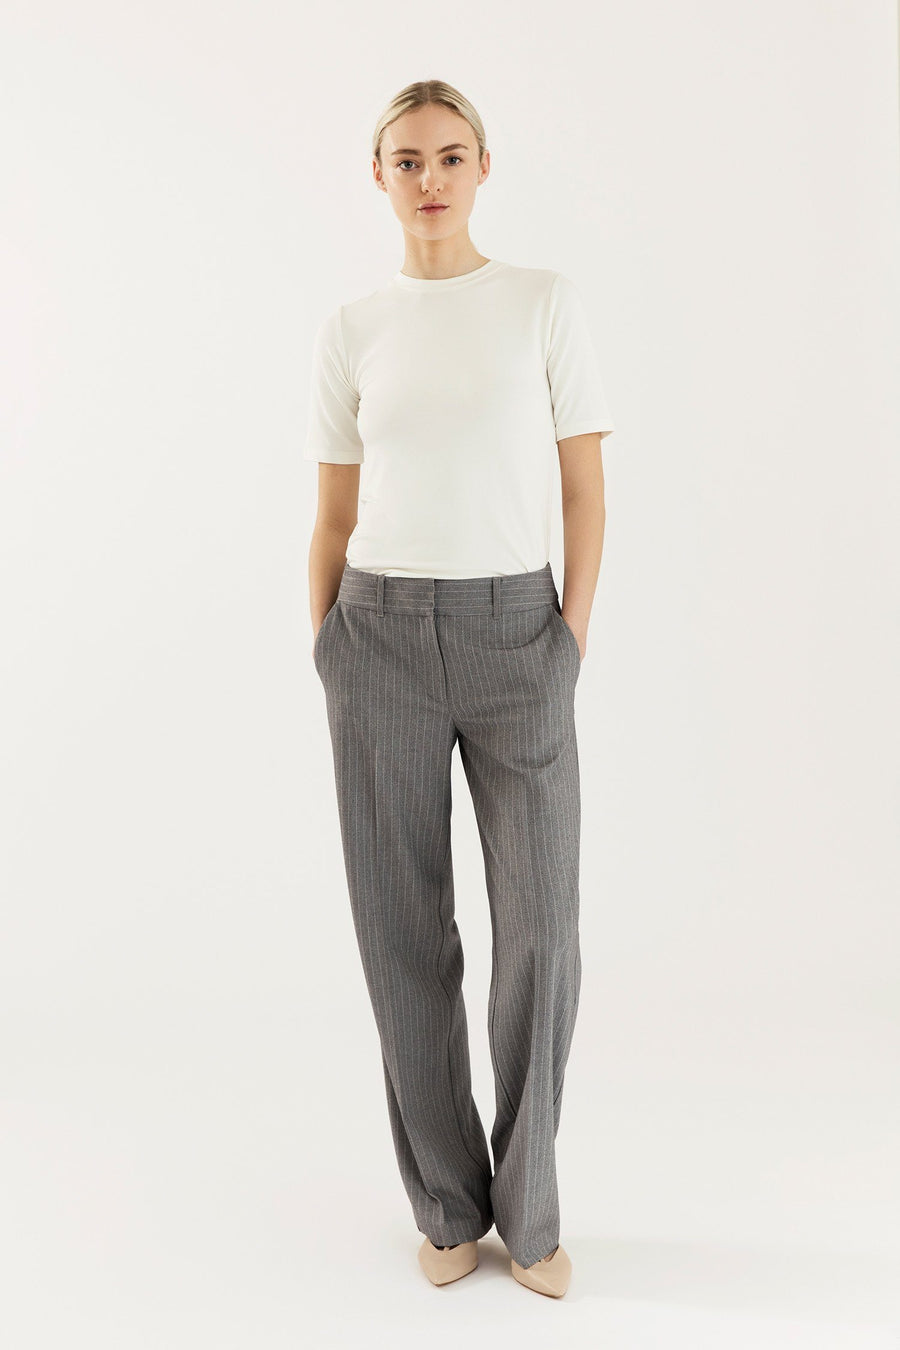 BELTON TROUSERS - GREY PINSTRIPE Trousers Stylein